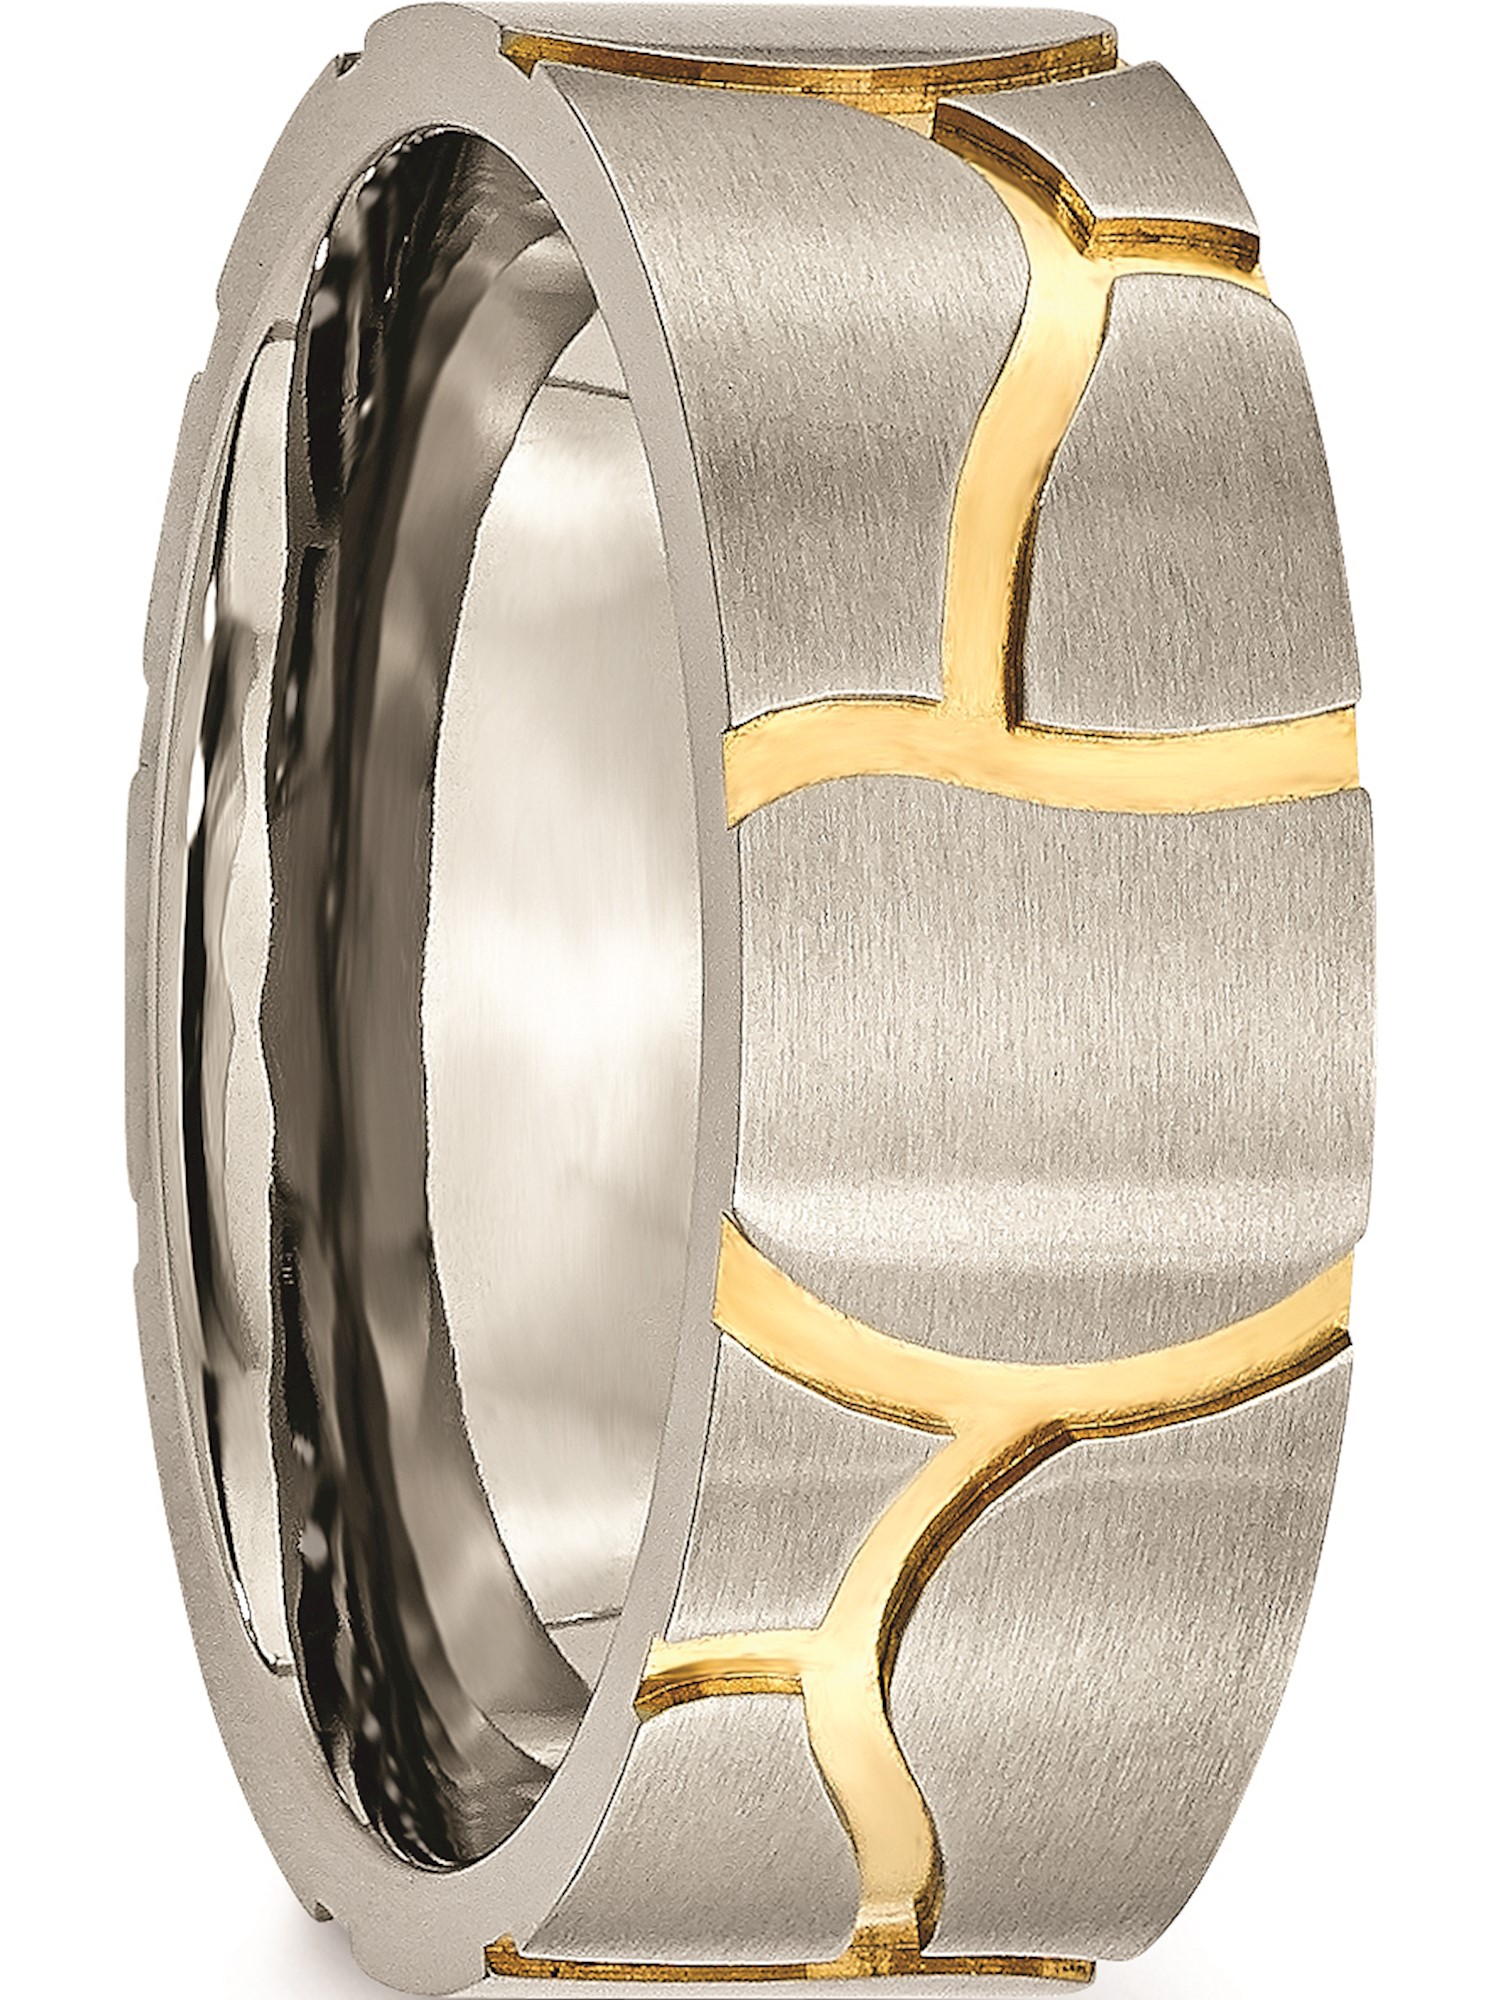 Titanium Grooved Yellow Ip-plated Mens 8mm Brushed Band Best Quality Free Gift Box